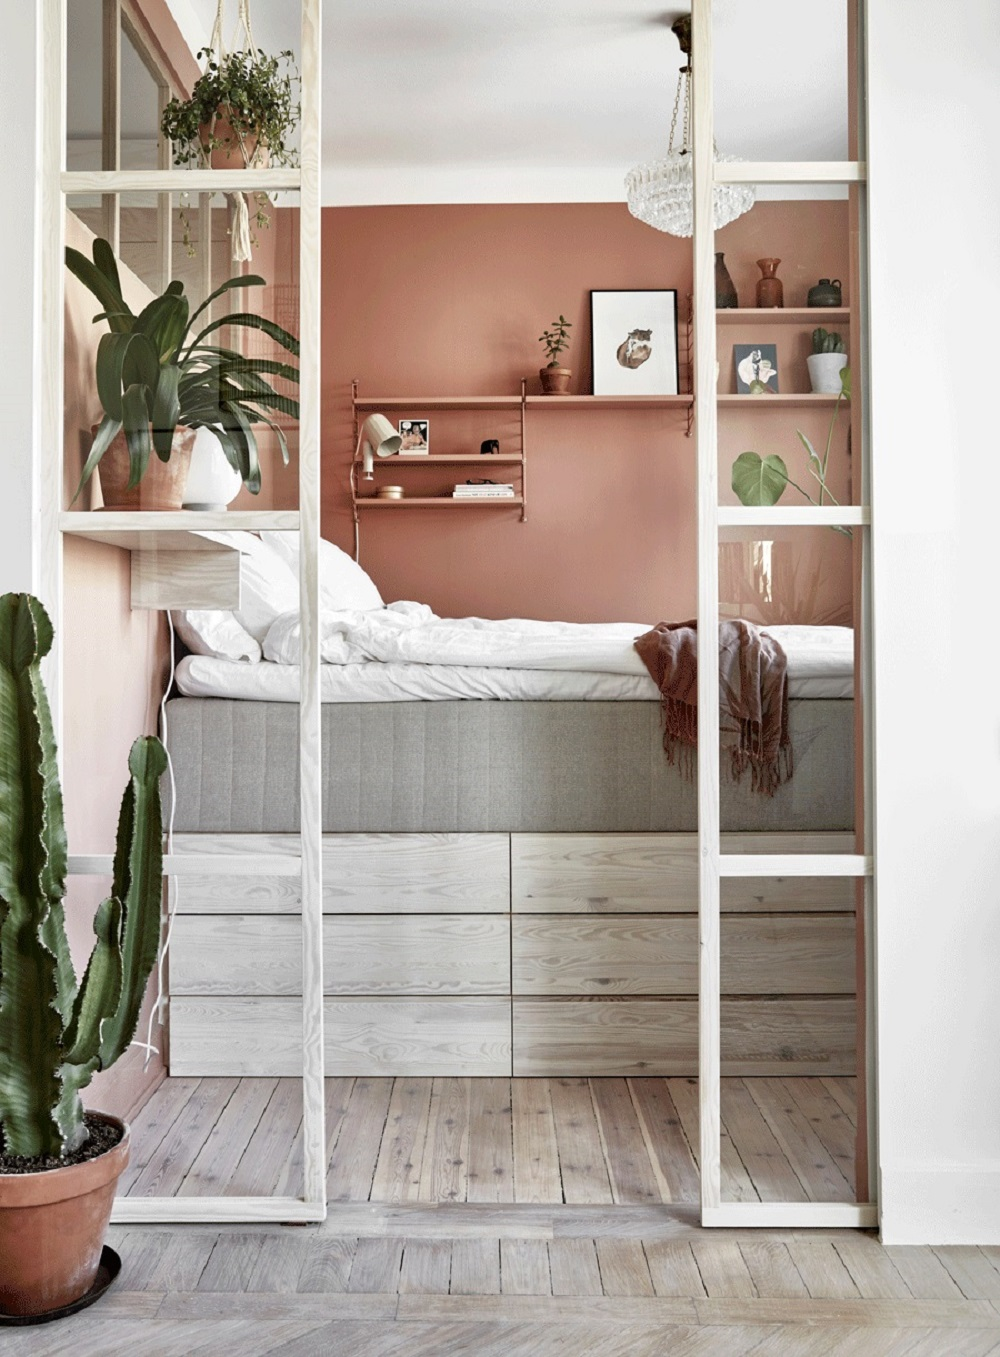 Small bedroom in a pink apartment | photo by Jonas Gustavsson